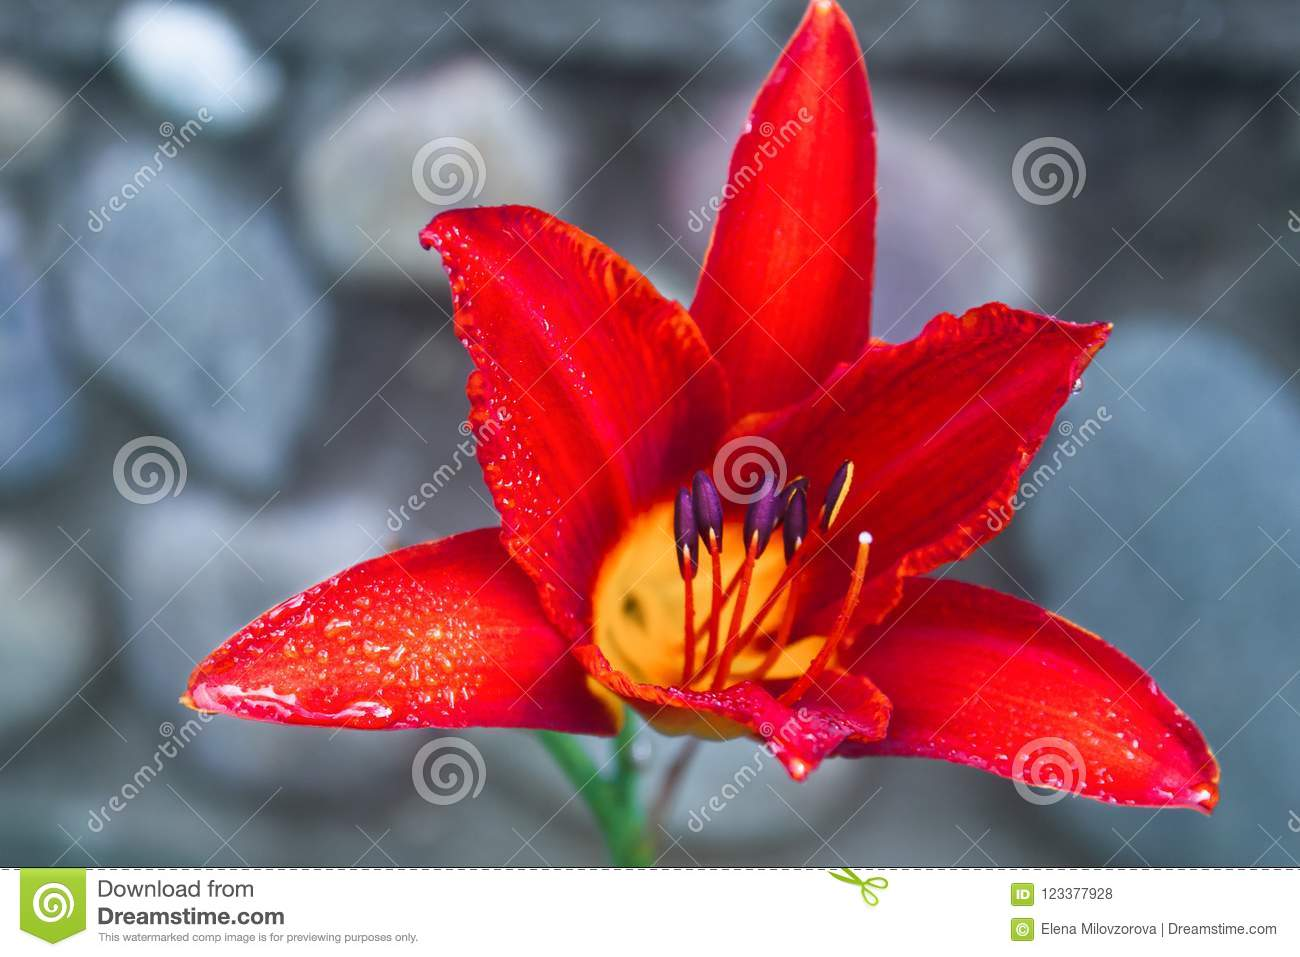 Red Lily Flower with rain drops